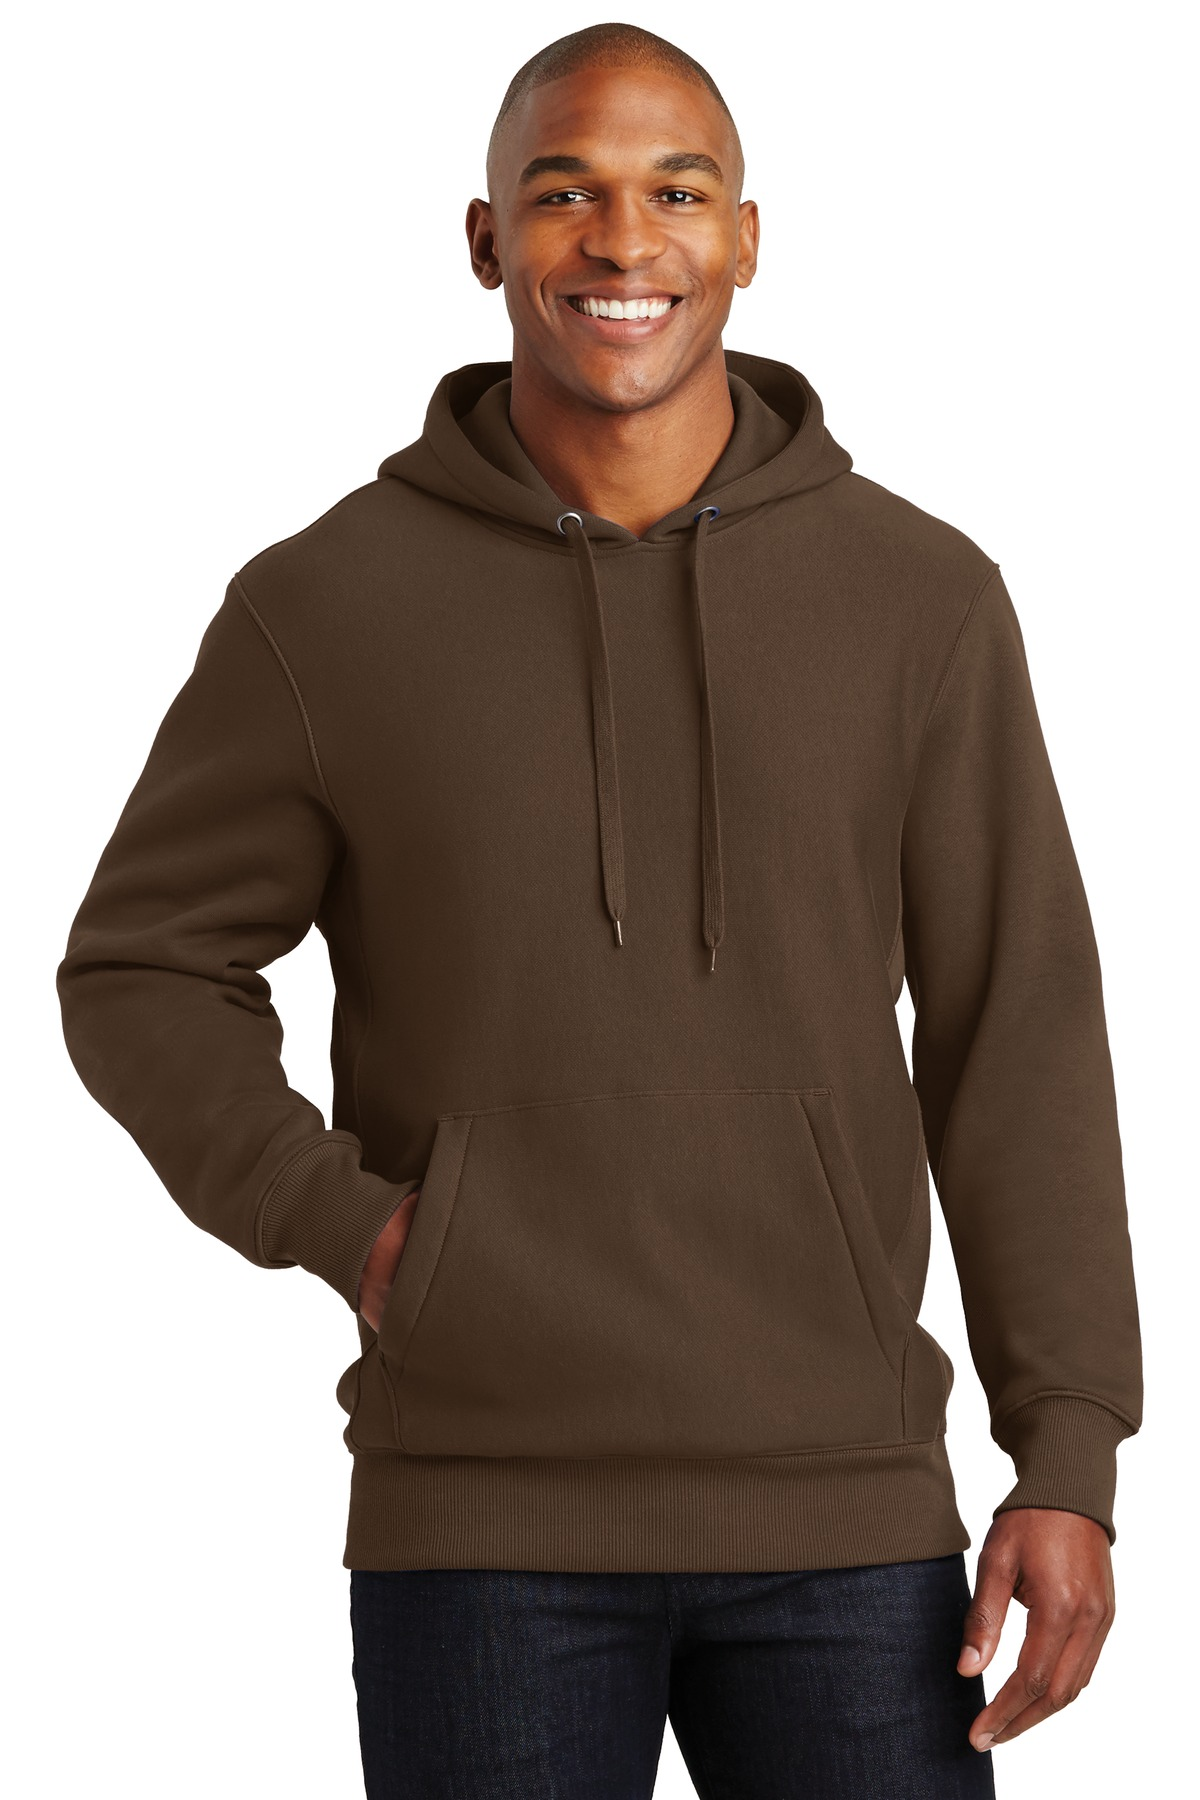 Sport-Tek ®  Super Heavyweight Pullover Hooded Sweatshirt.  F281 - Brown